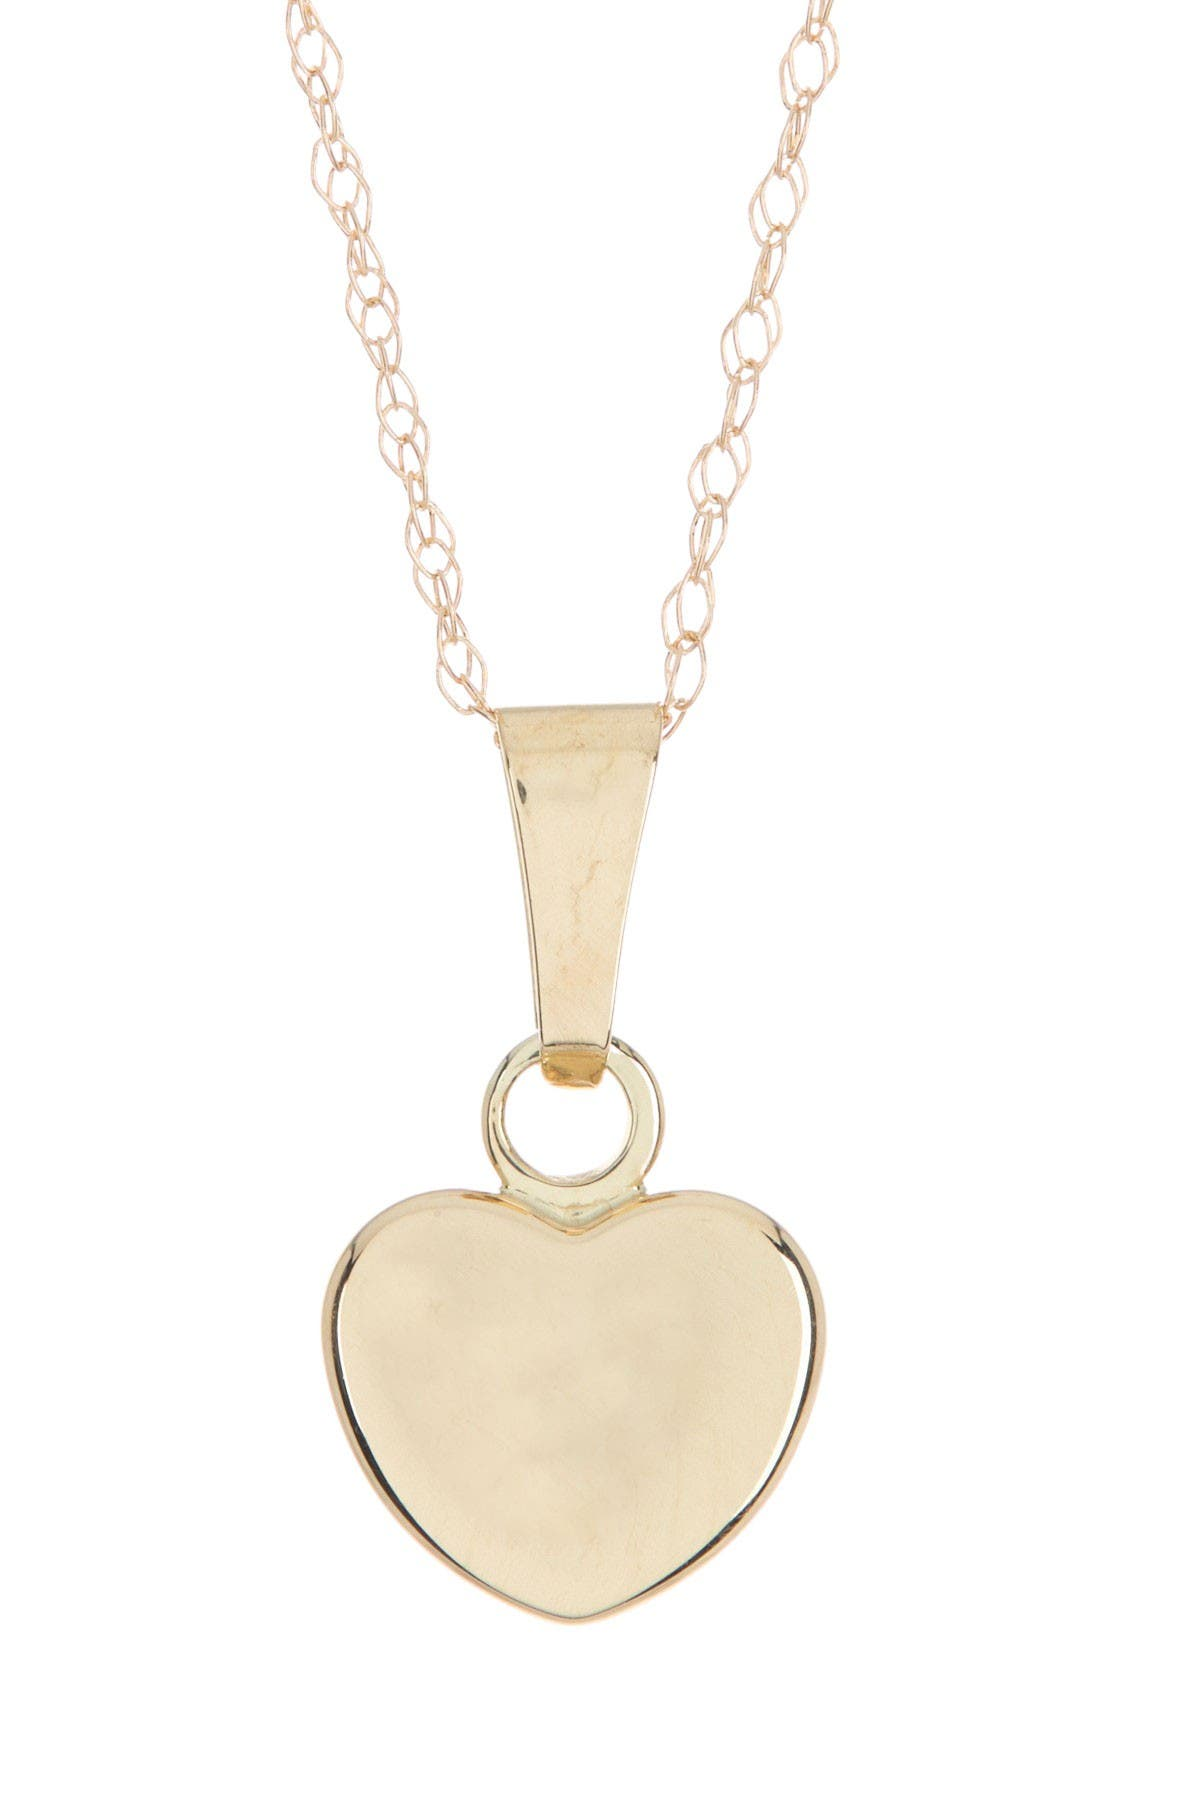 Image of Candela 10K Yellow Gold Puffed Heart Pendant Necklace